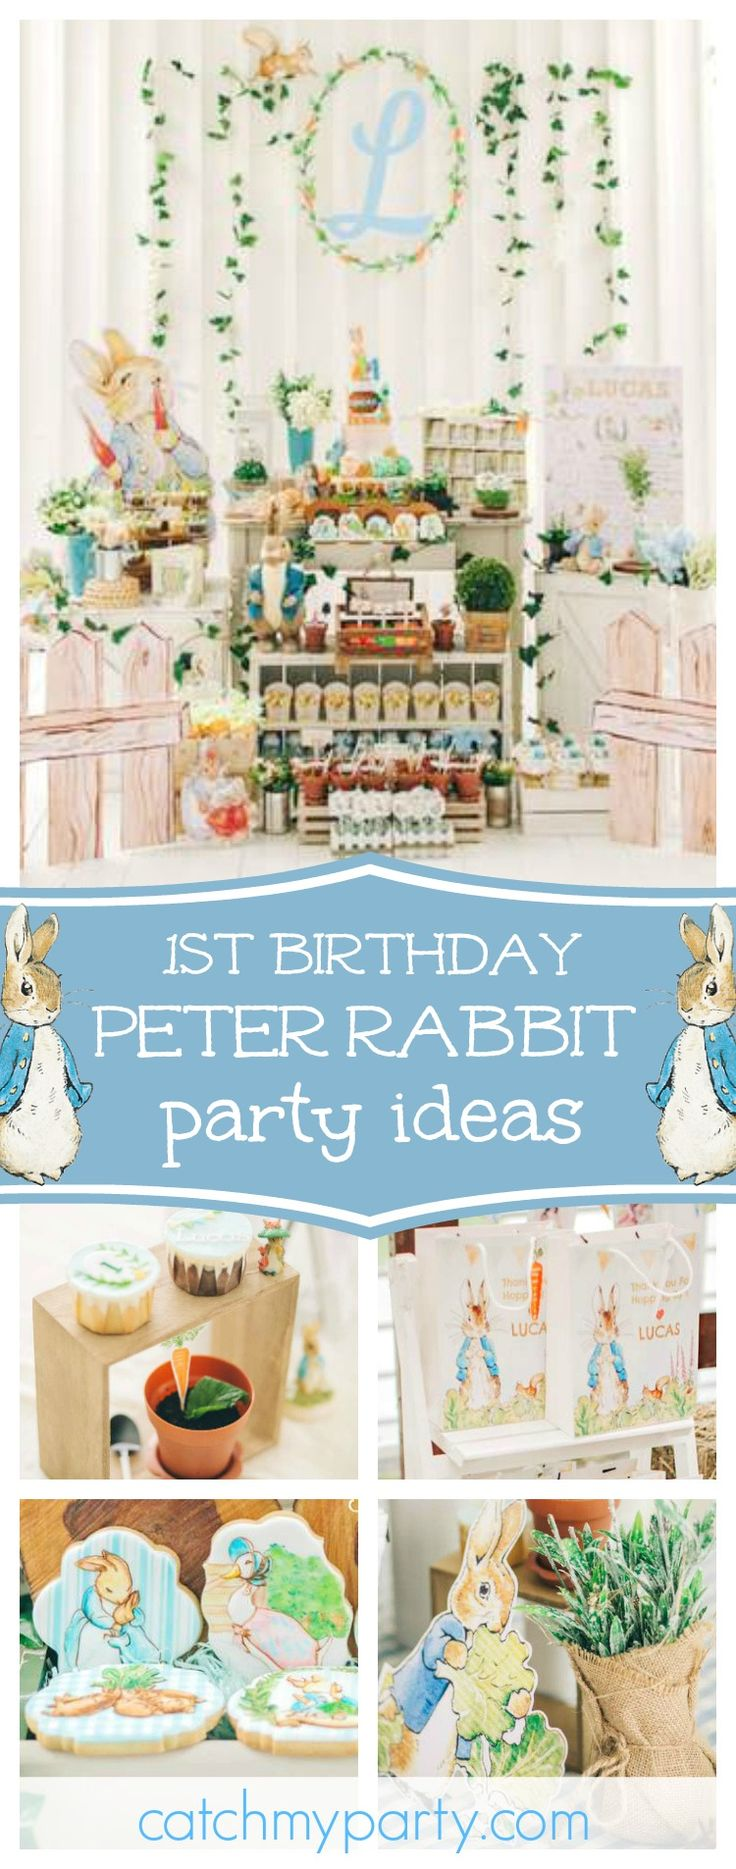 Don't miss this amazing Peter Rabbit 1st birthday party! The decor is incredible!! See more party ideas and share yours at CatchMyParty.com